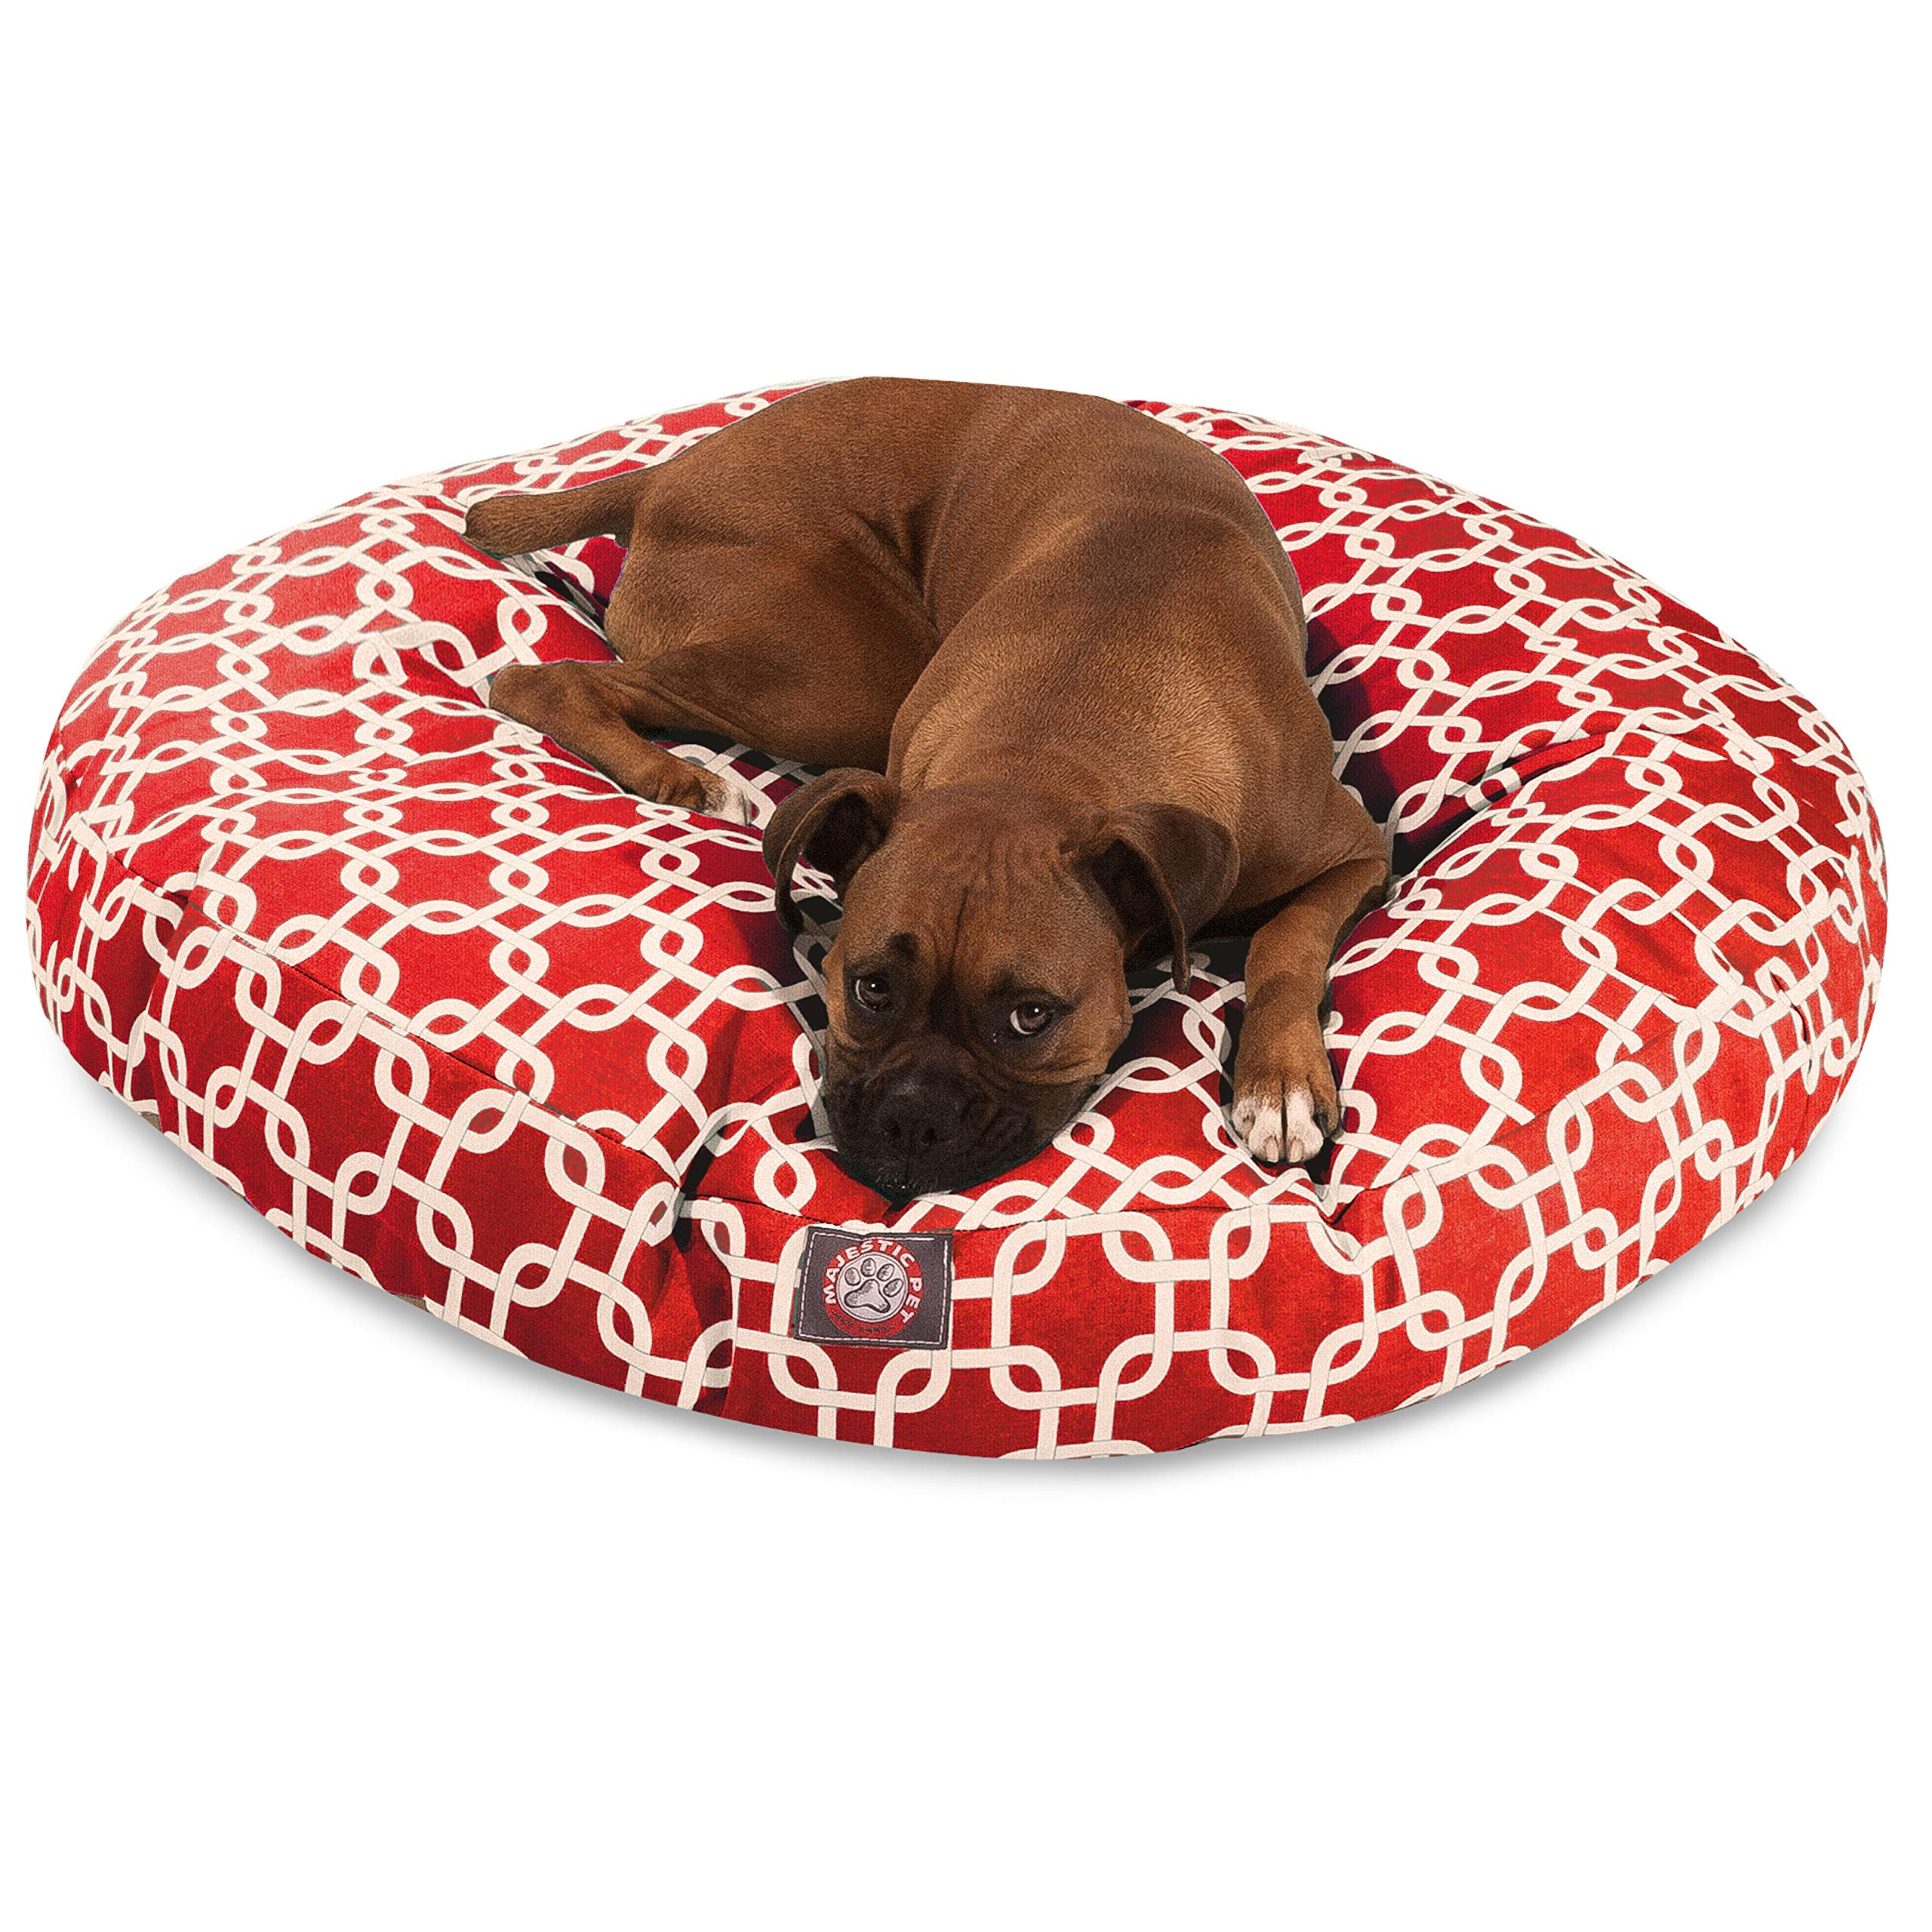 Red Links Large Round Indoor Outdoor Pet Dog Bed With Removable Washable Cover By Majestic Pet Products by Majestic Pet